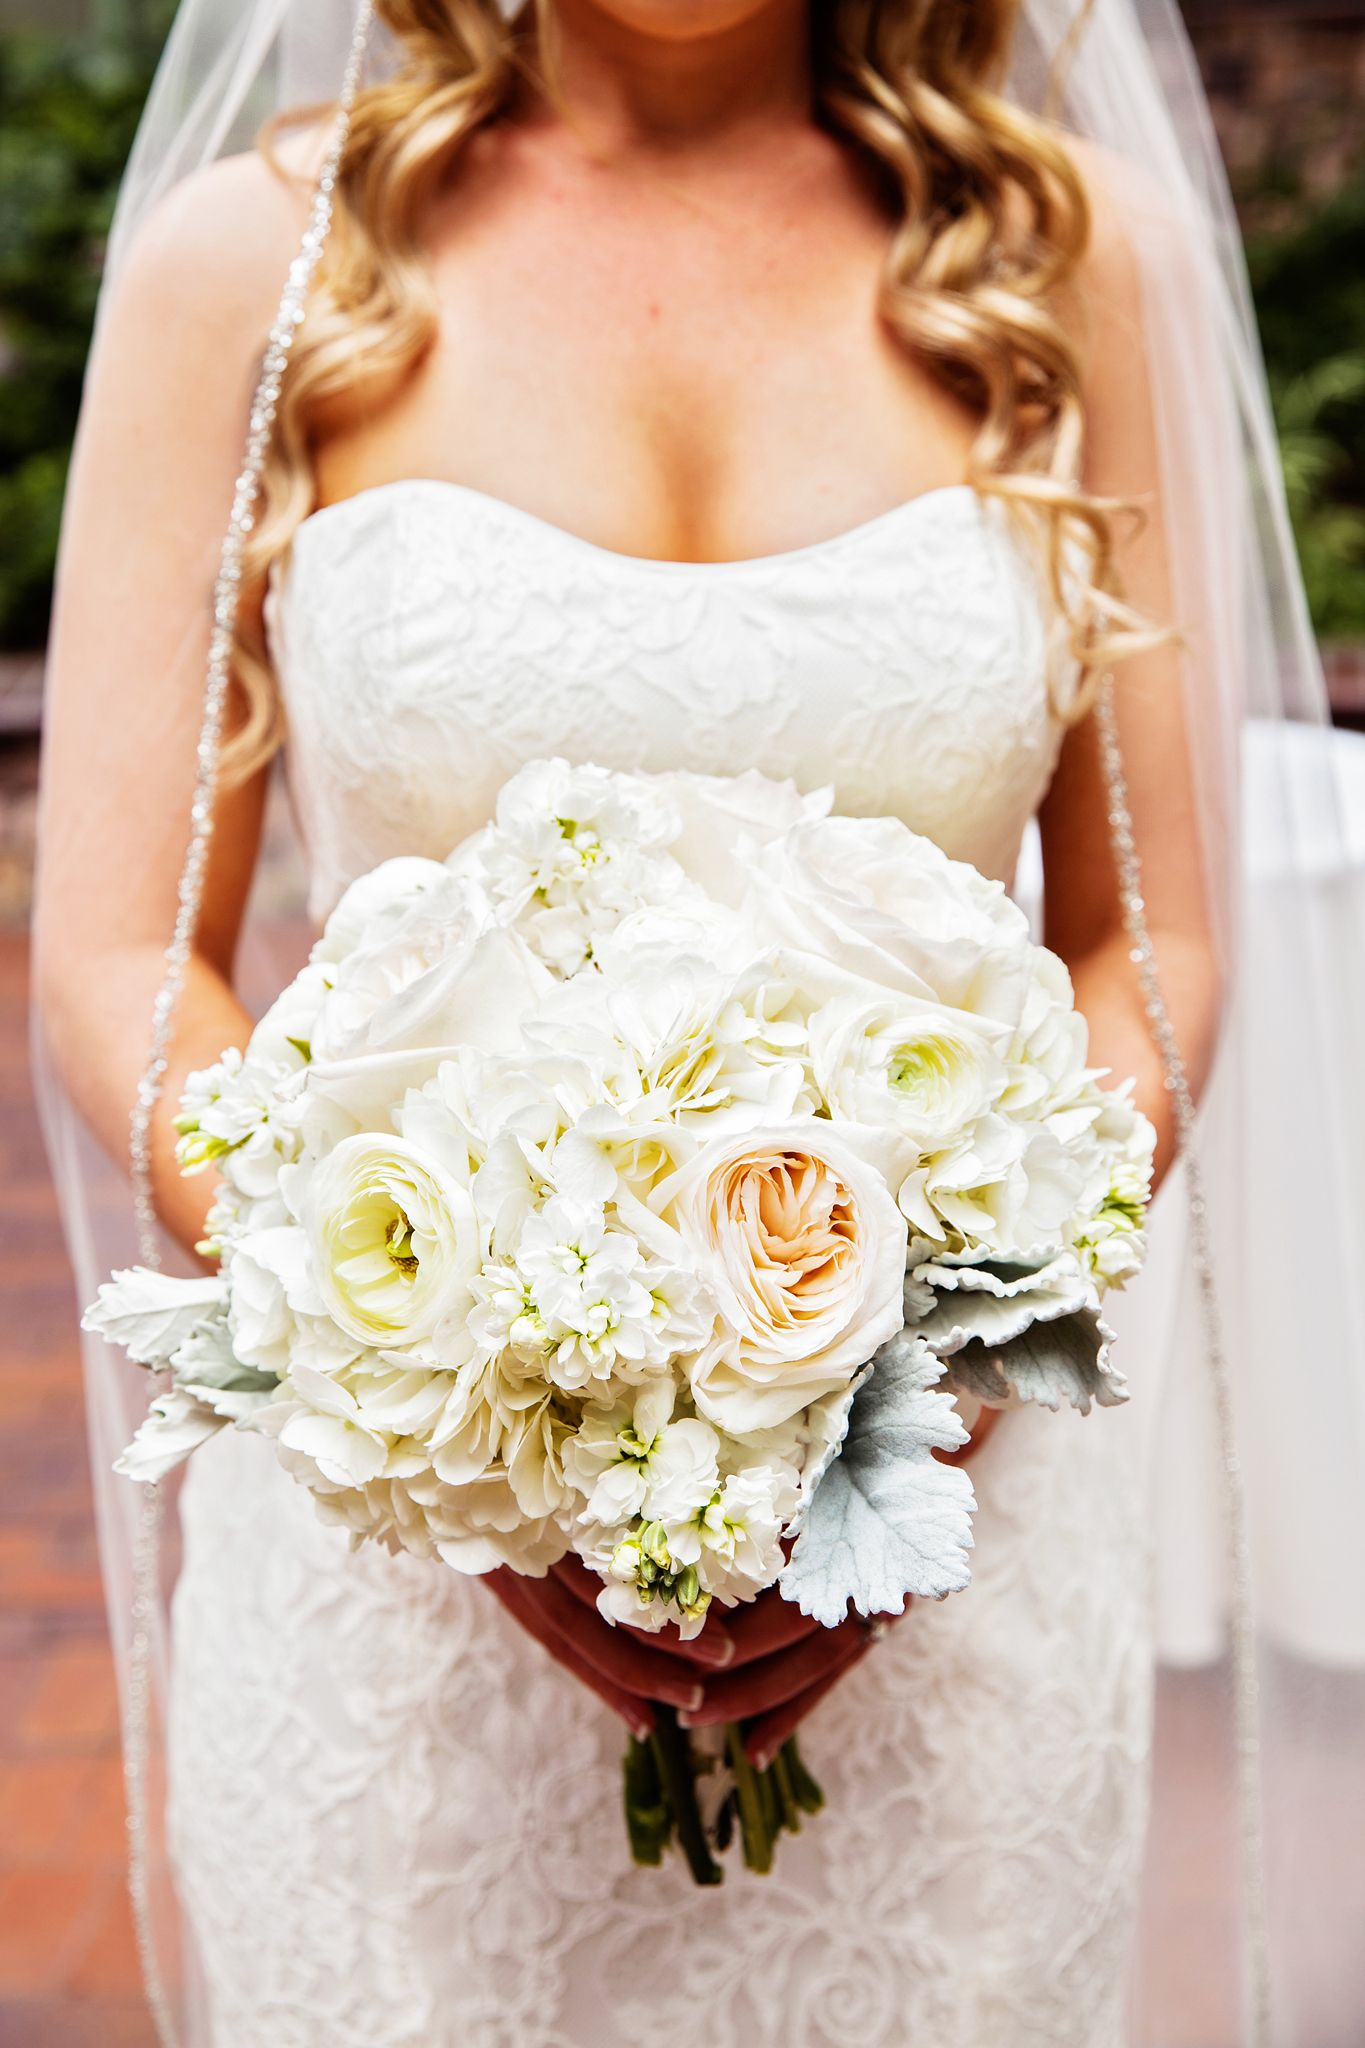 Love this beautiful bride and her bouquet! #princess #bride #disney ...